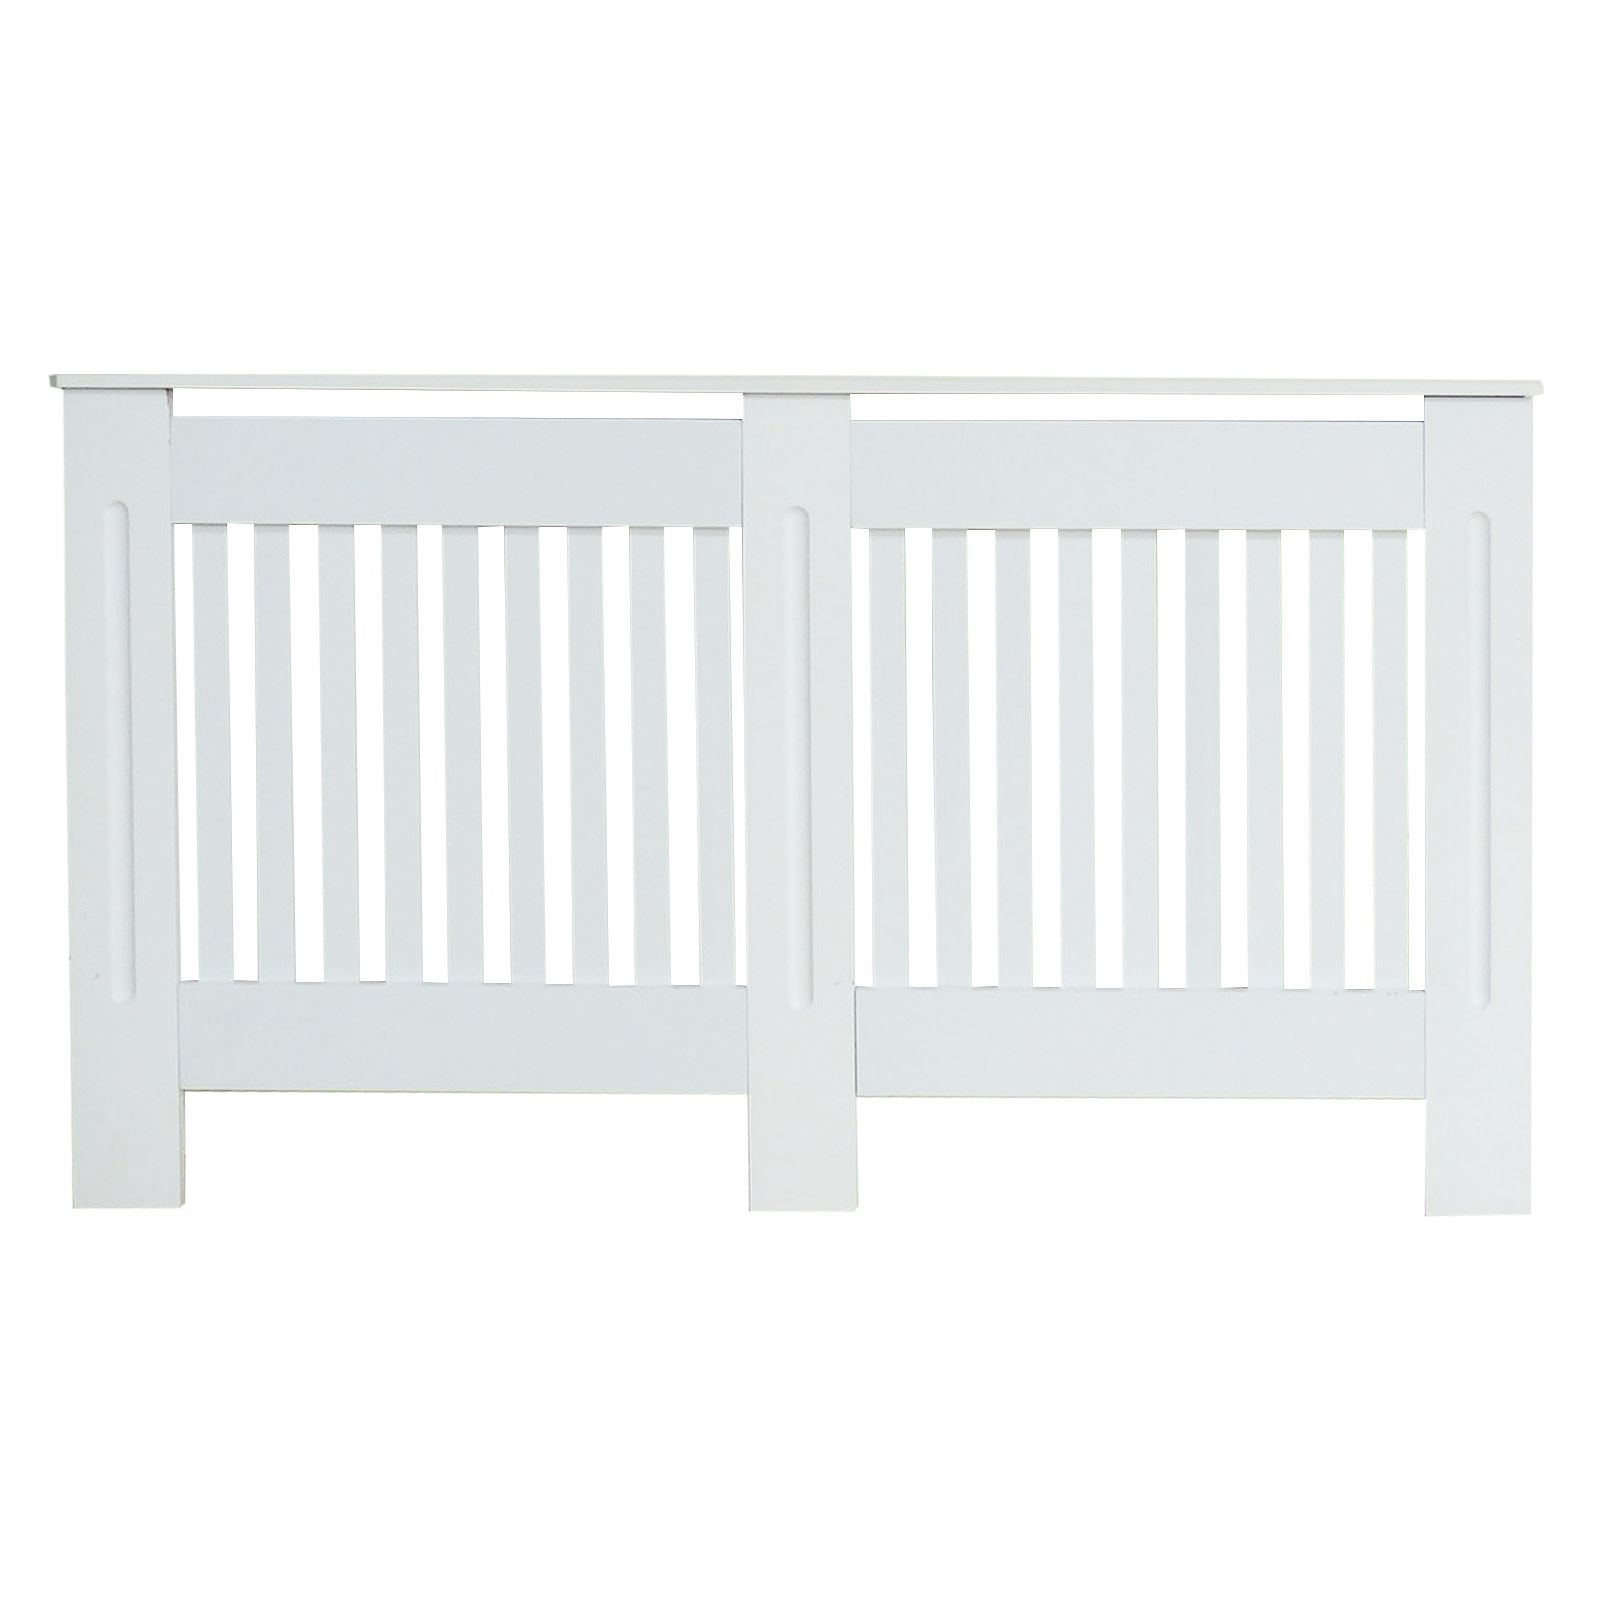 Traditional-Radiator-Cover-Cabinet-Vertical-Slatted-MDF-Wood-Small-Large-Unit thumbnail 6